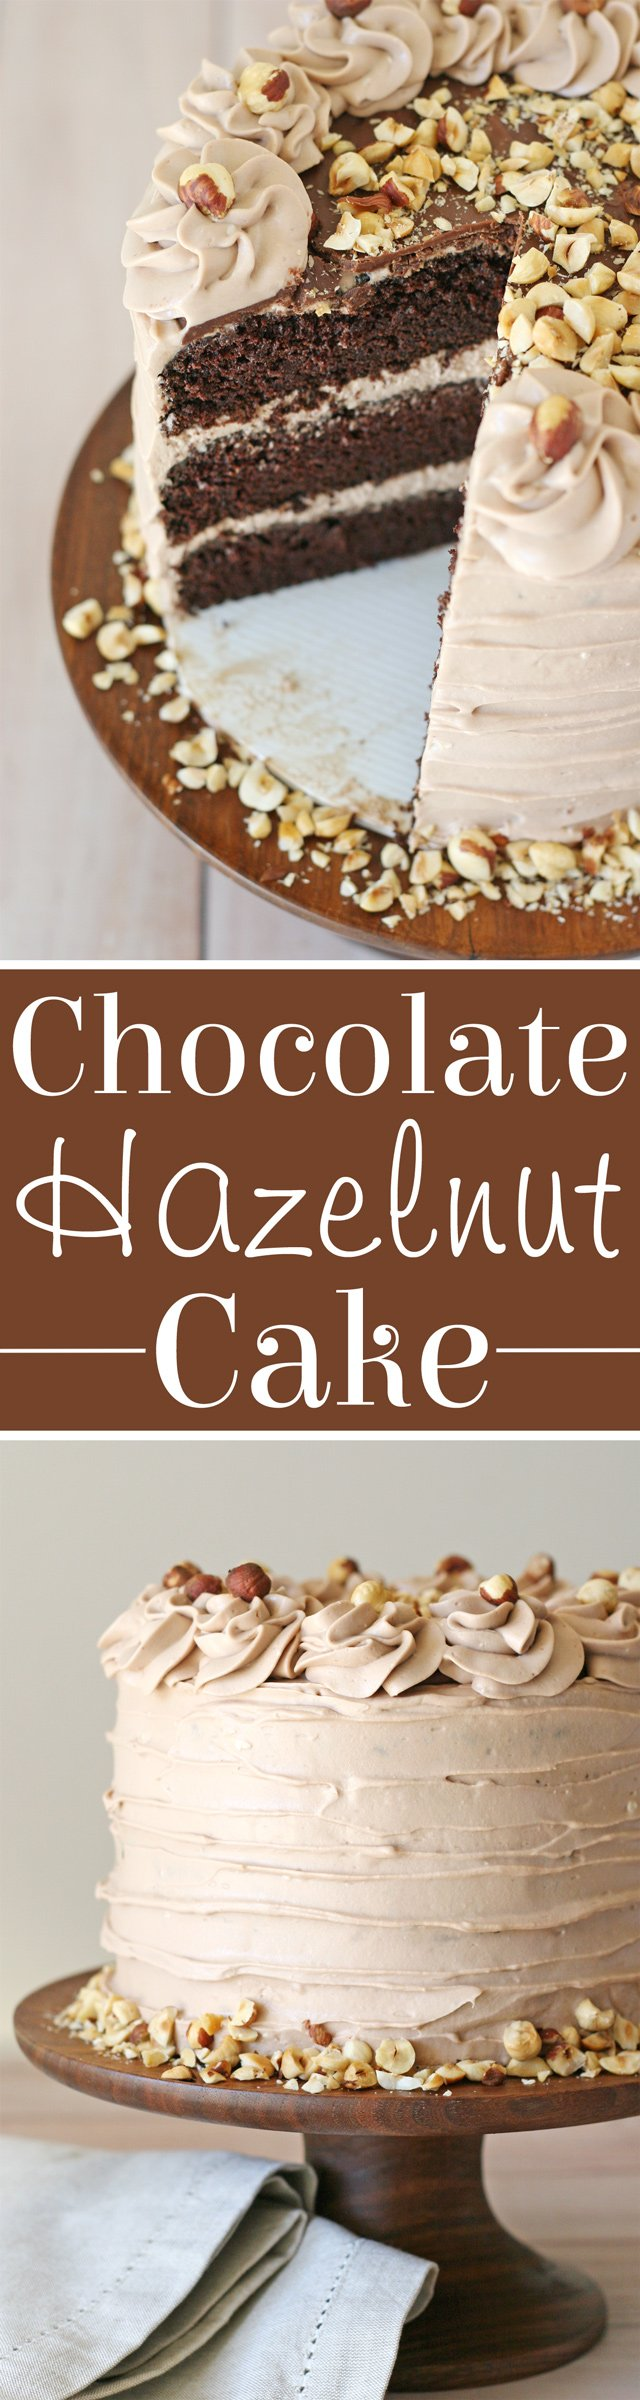 Chocolate Hazelnut Cake Recipe... YUM!